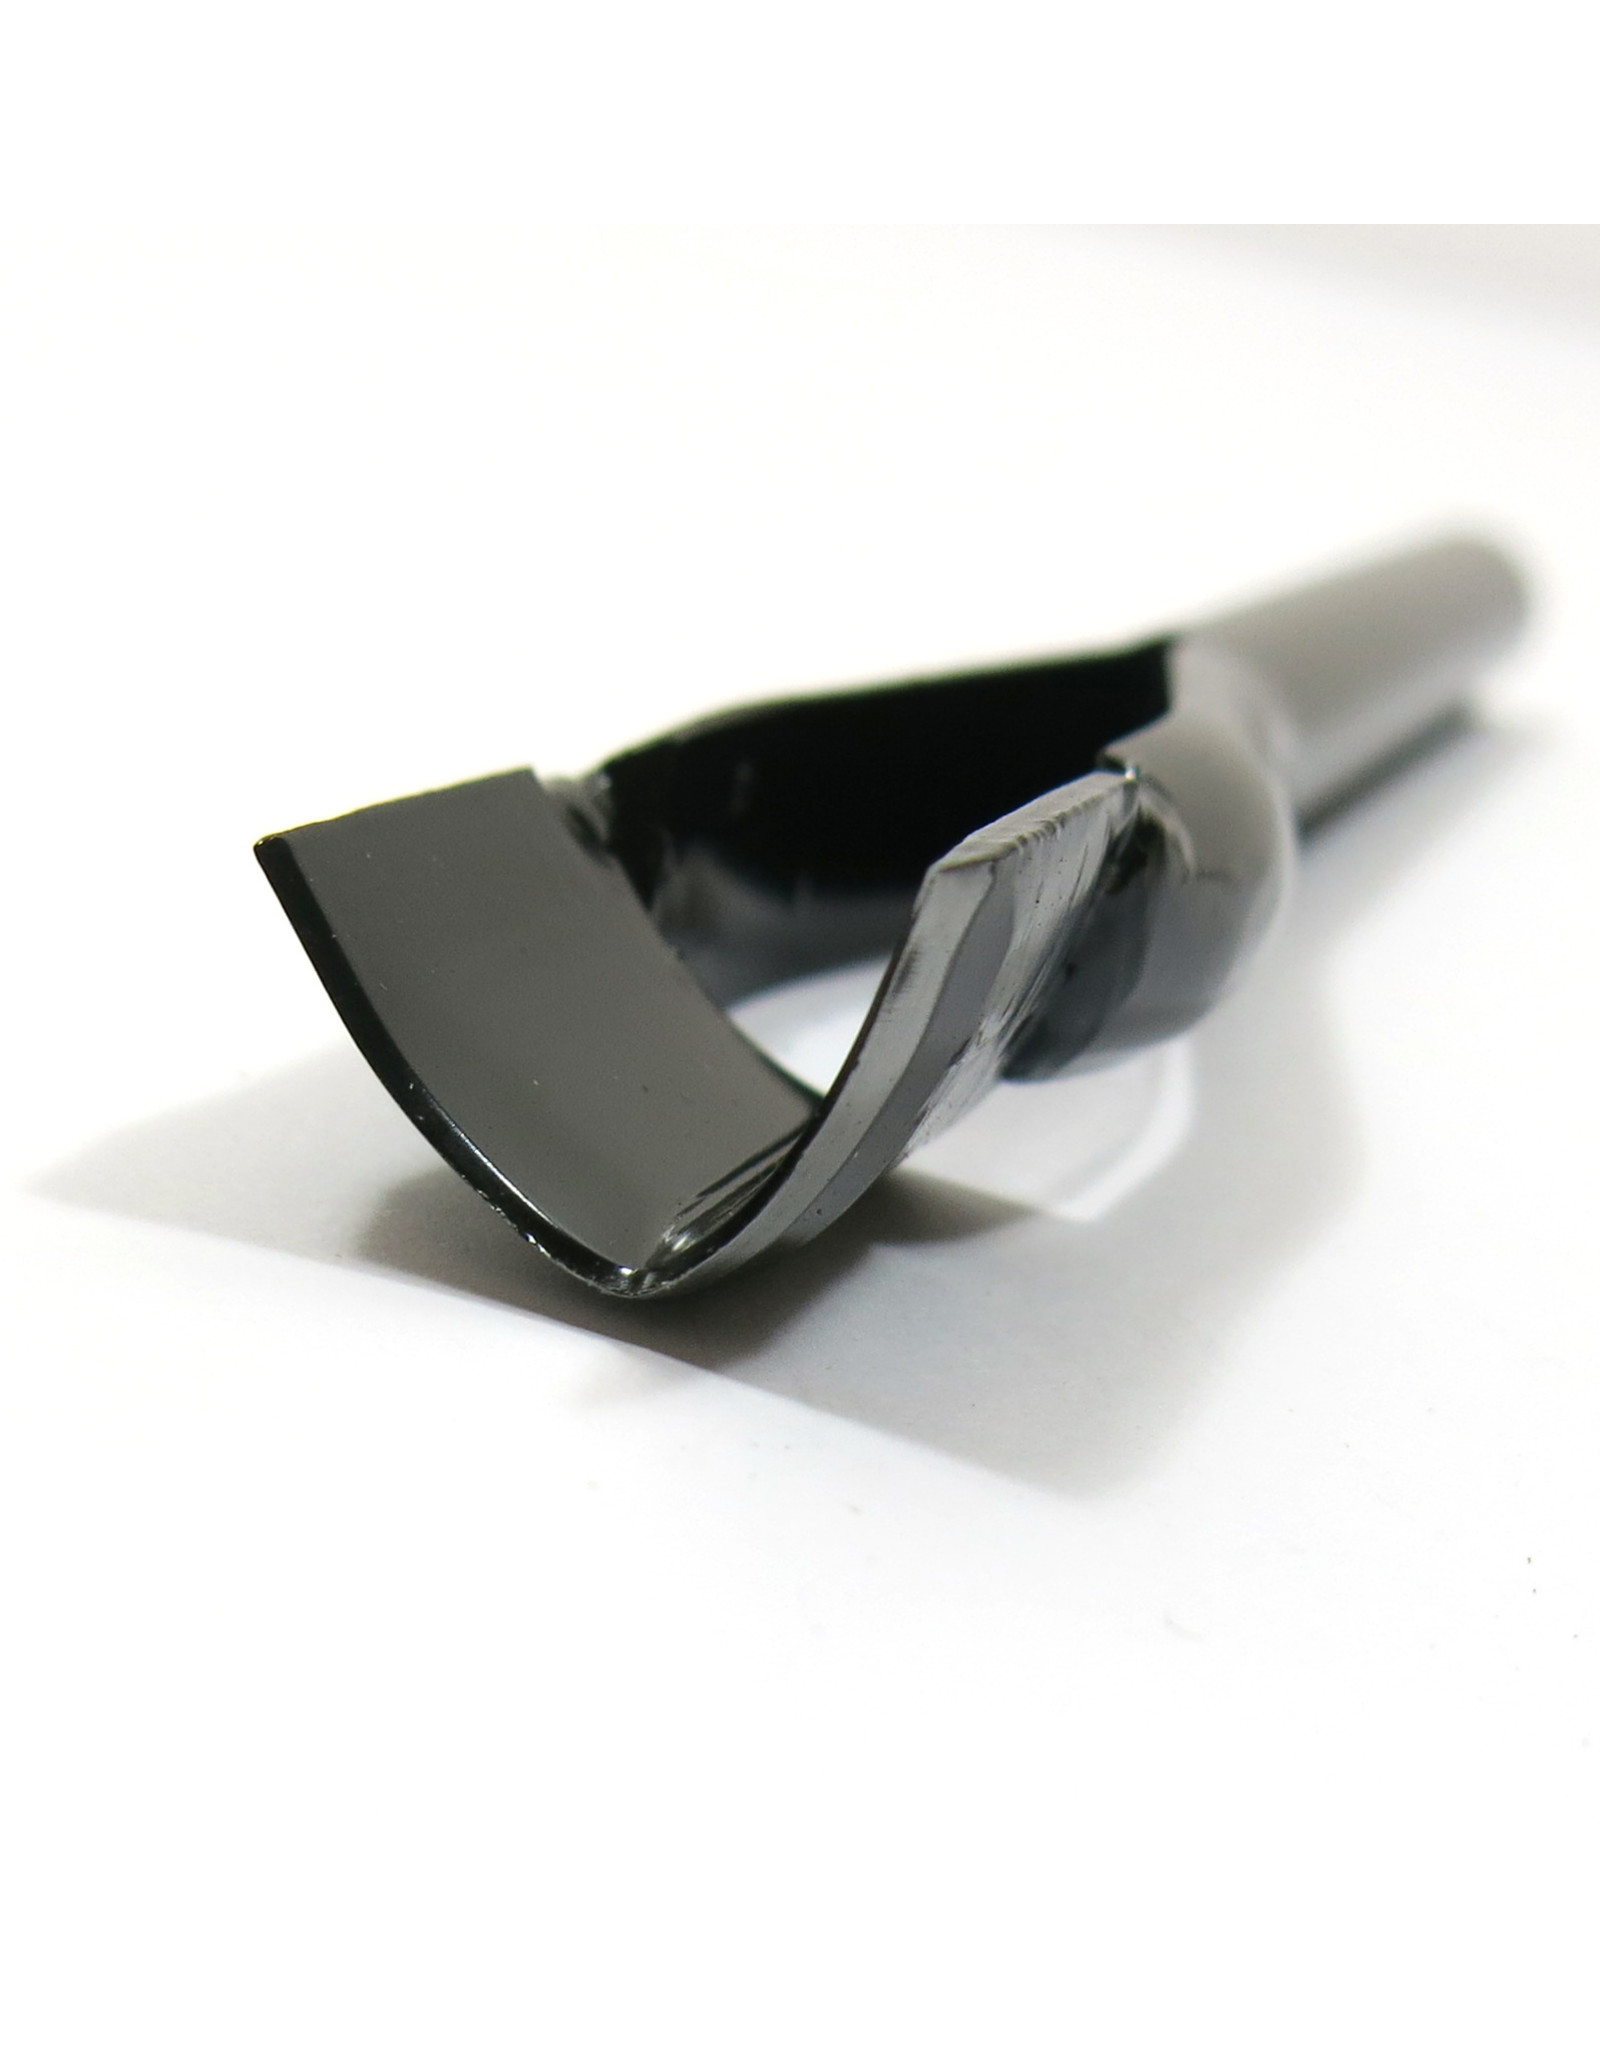 Strap end punch 15mm (pointed)